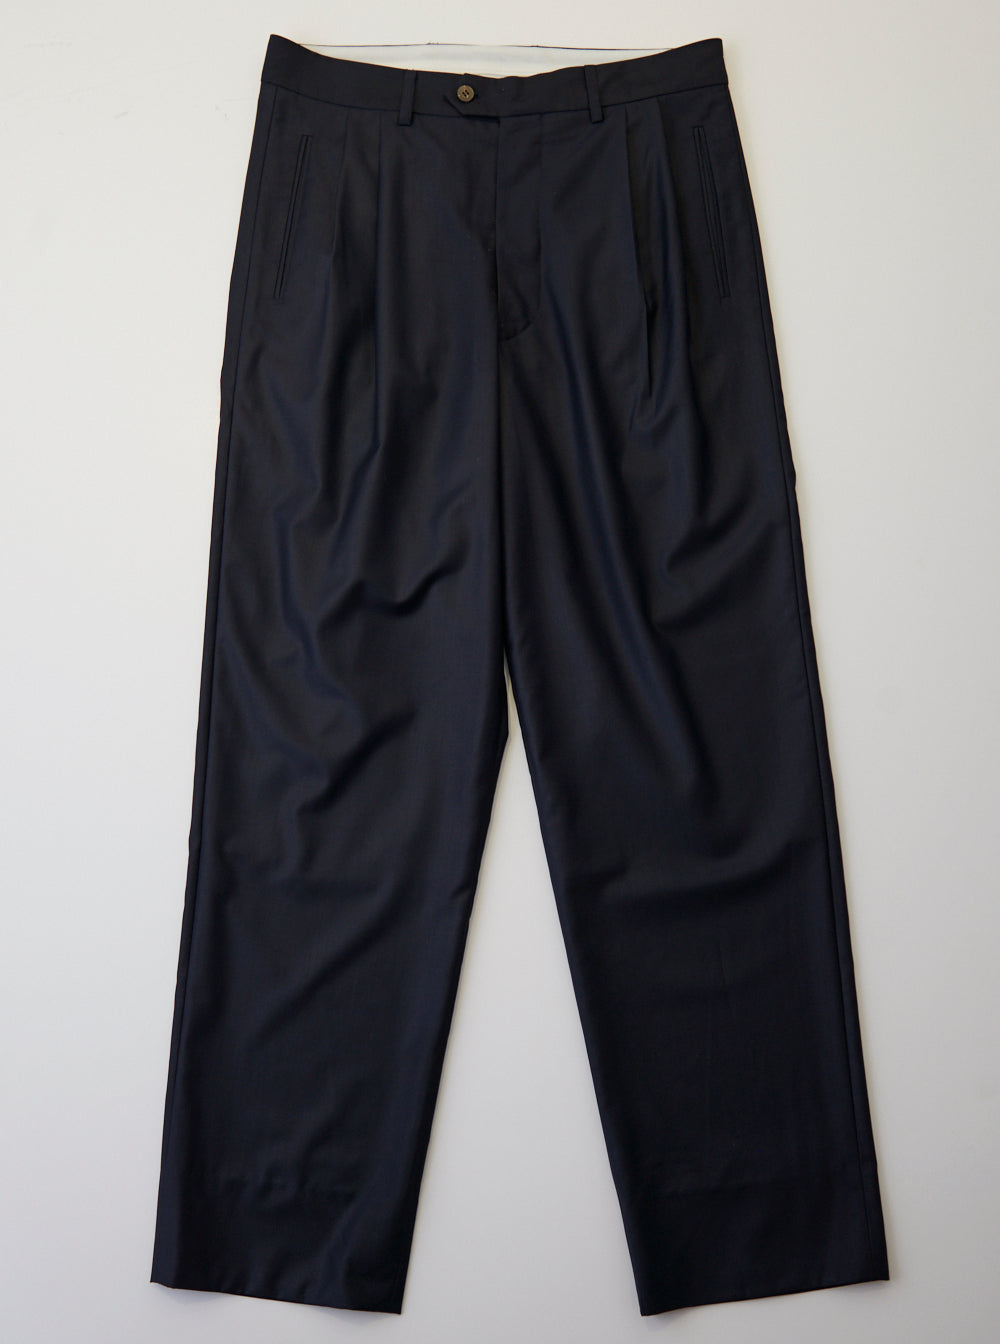 Vinti Andrews Tailor Trousers Black Suiting